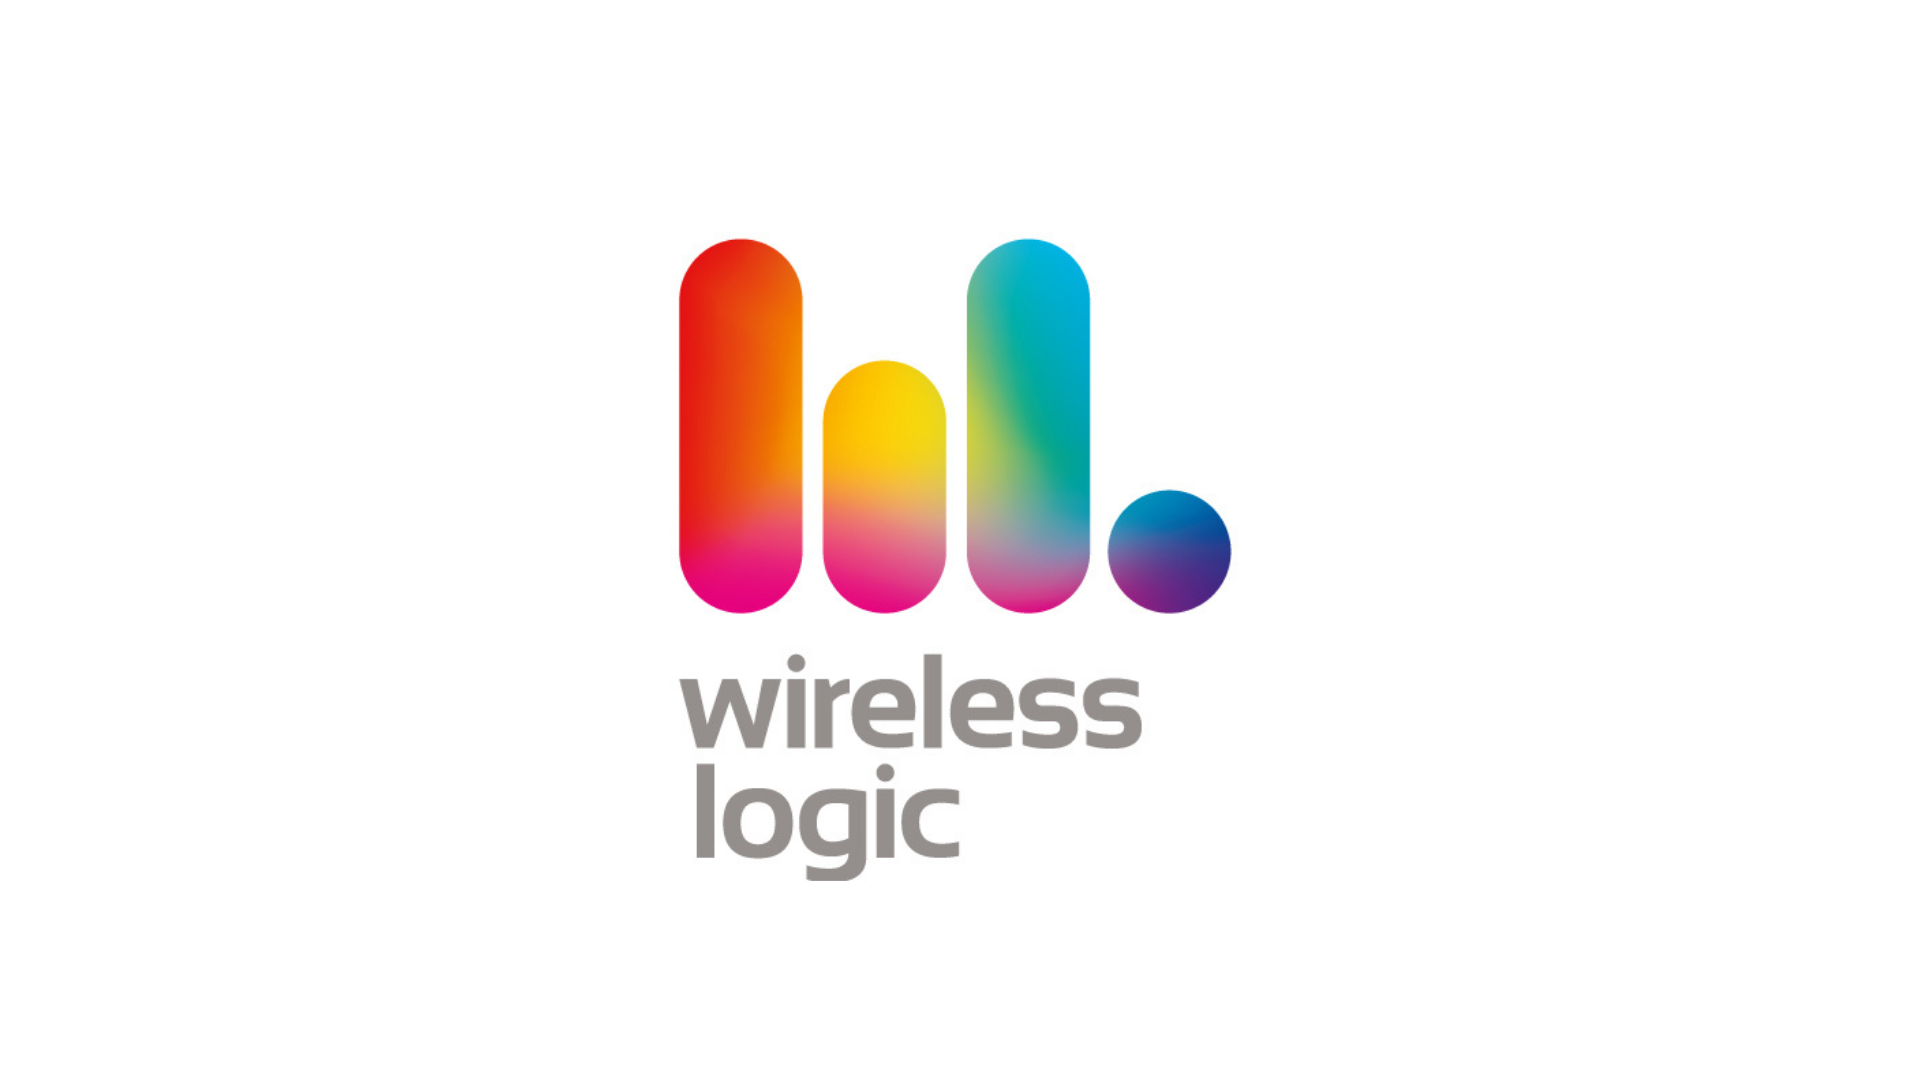 Wireless Logic – The Future of Connectivity